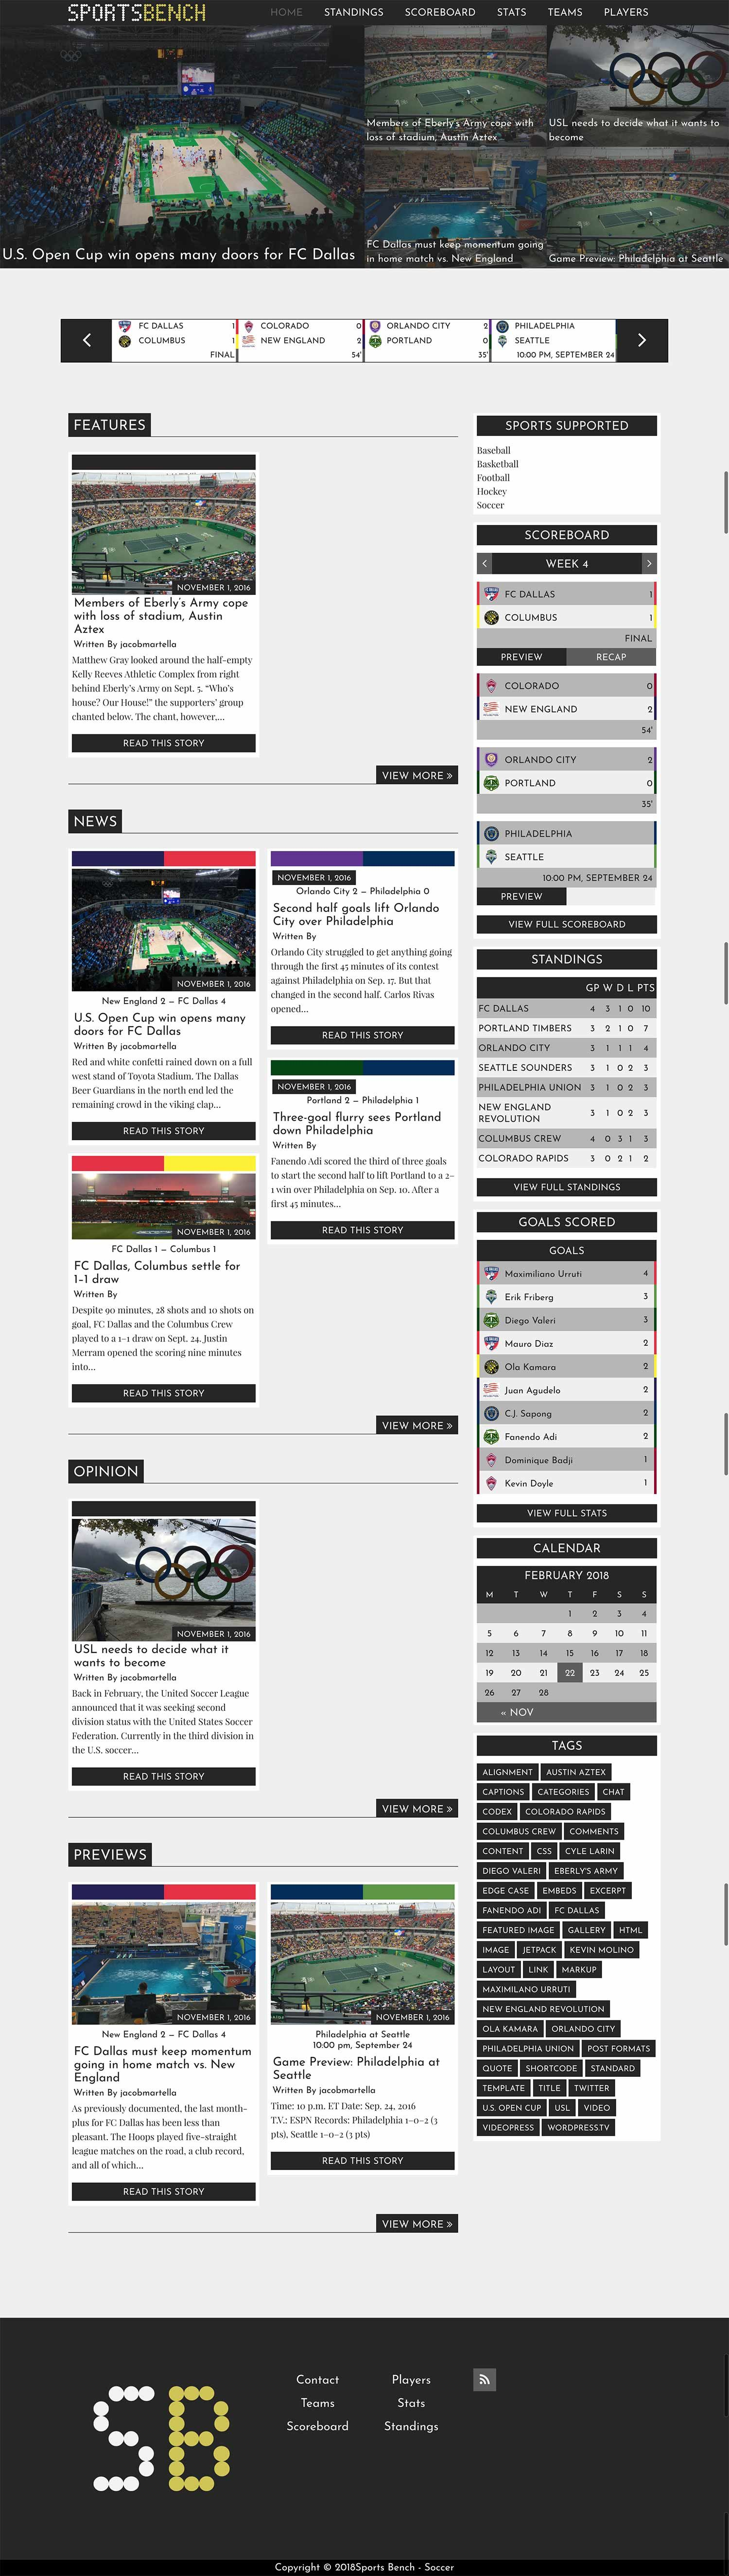 Sports Bench - WordPress Sports Stats Plugin Screenshot 6